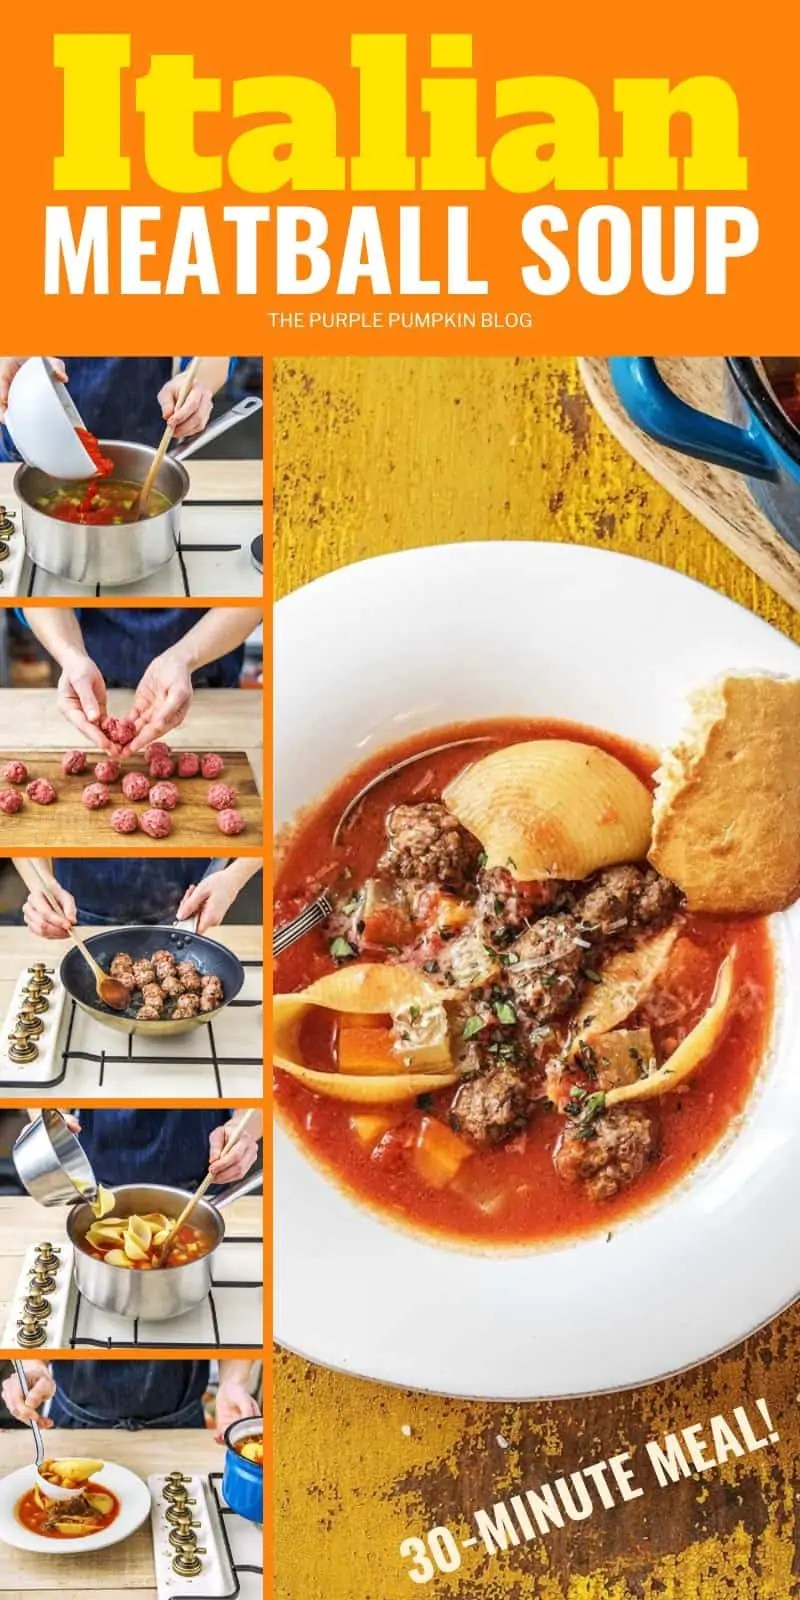 Step by step photos of how to make meatball soup.